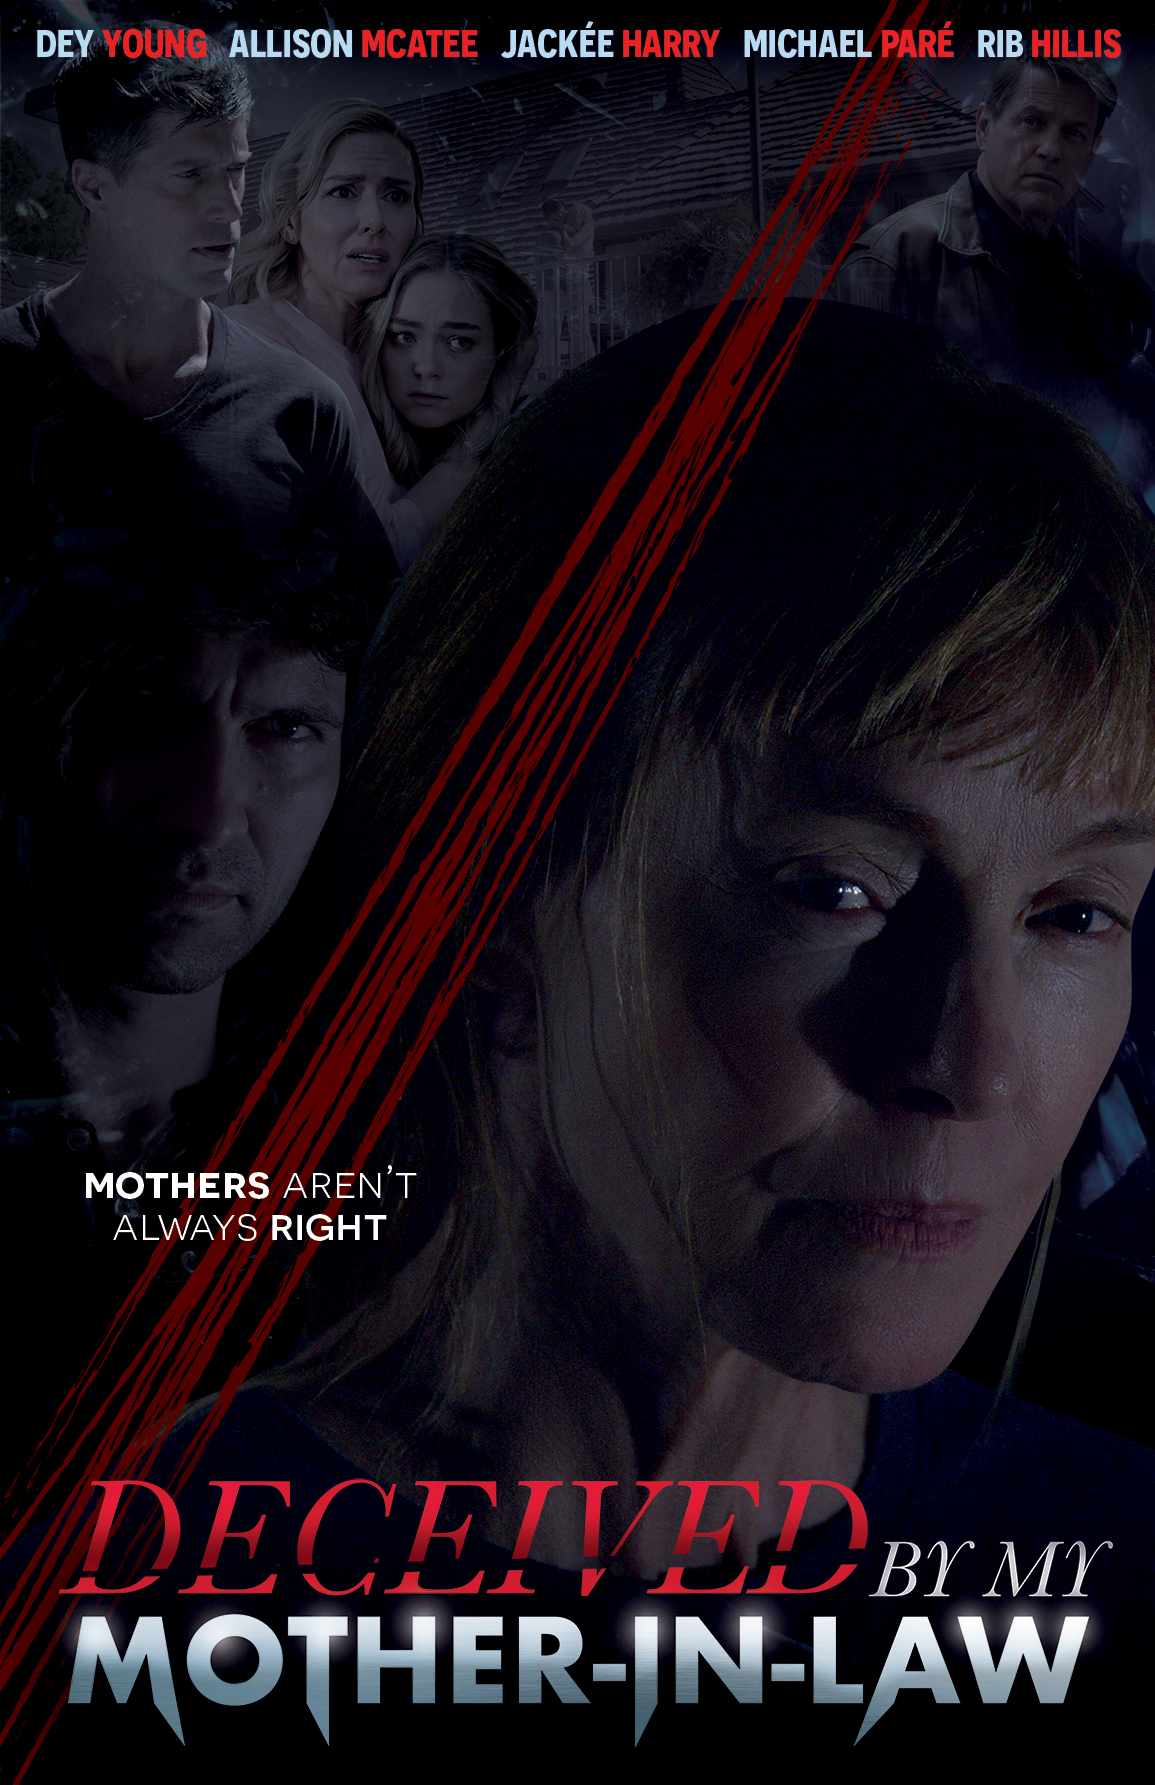 watch Deceived by My Mother-In-Law on soap2day